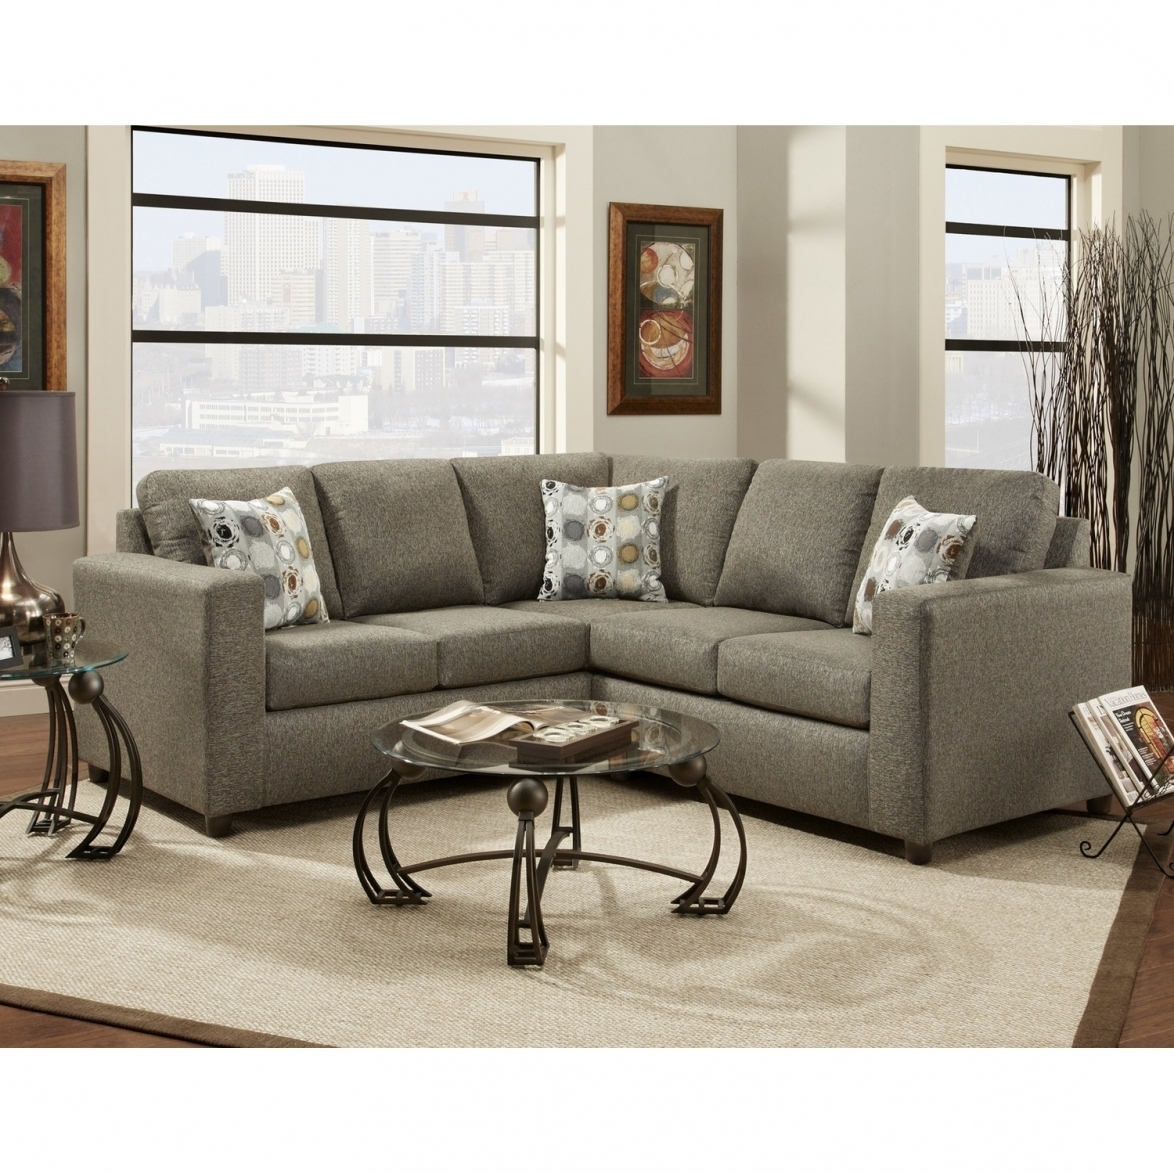 Photos Sectional Sofas Jacksonville Fl – Buildsimplehome For Popular Jacksonville Fl Sectional Sofas (View 9 of 15)